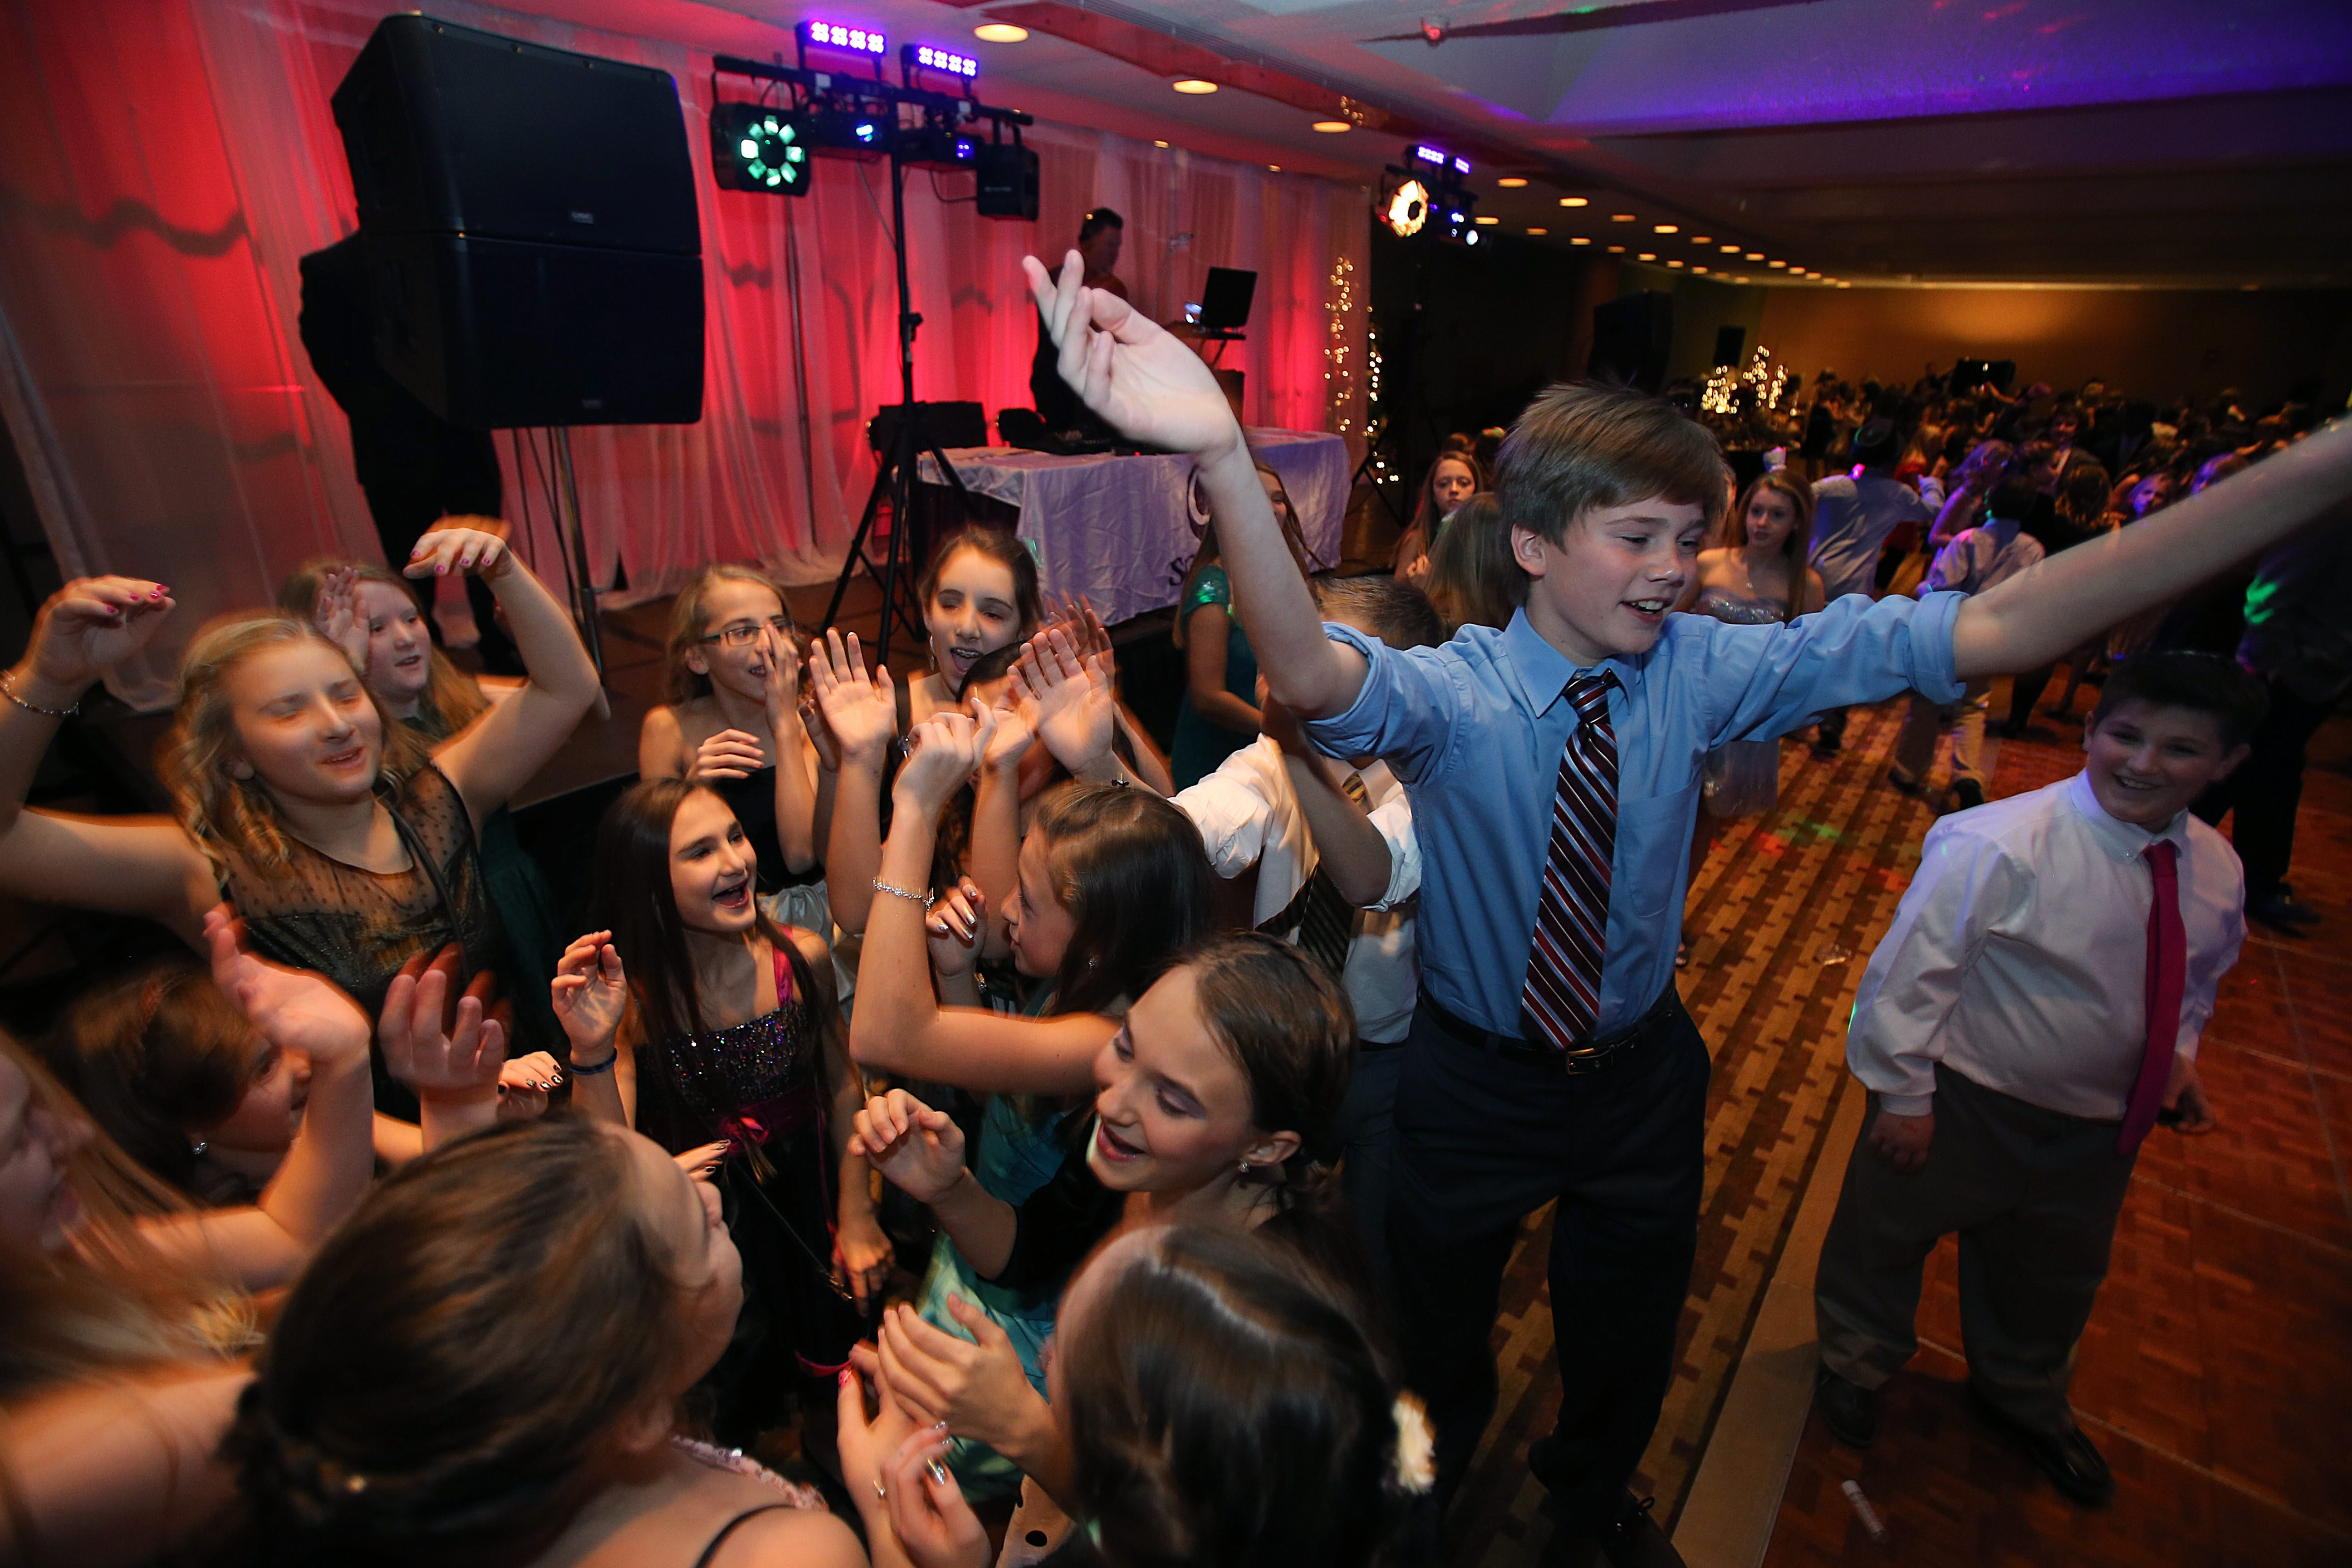 Students from area schools dance during the annual Maria M. Love Charity Ball in 2012. The dance raises money for people in need.